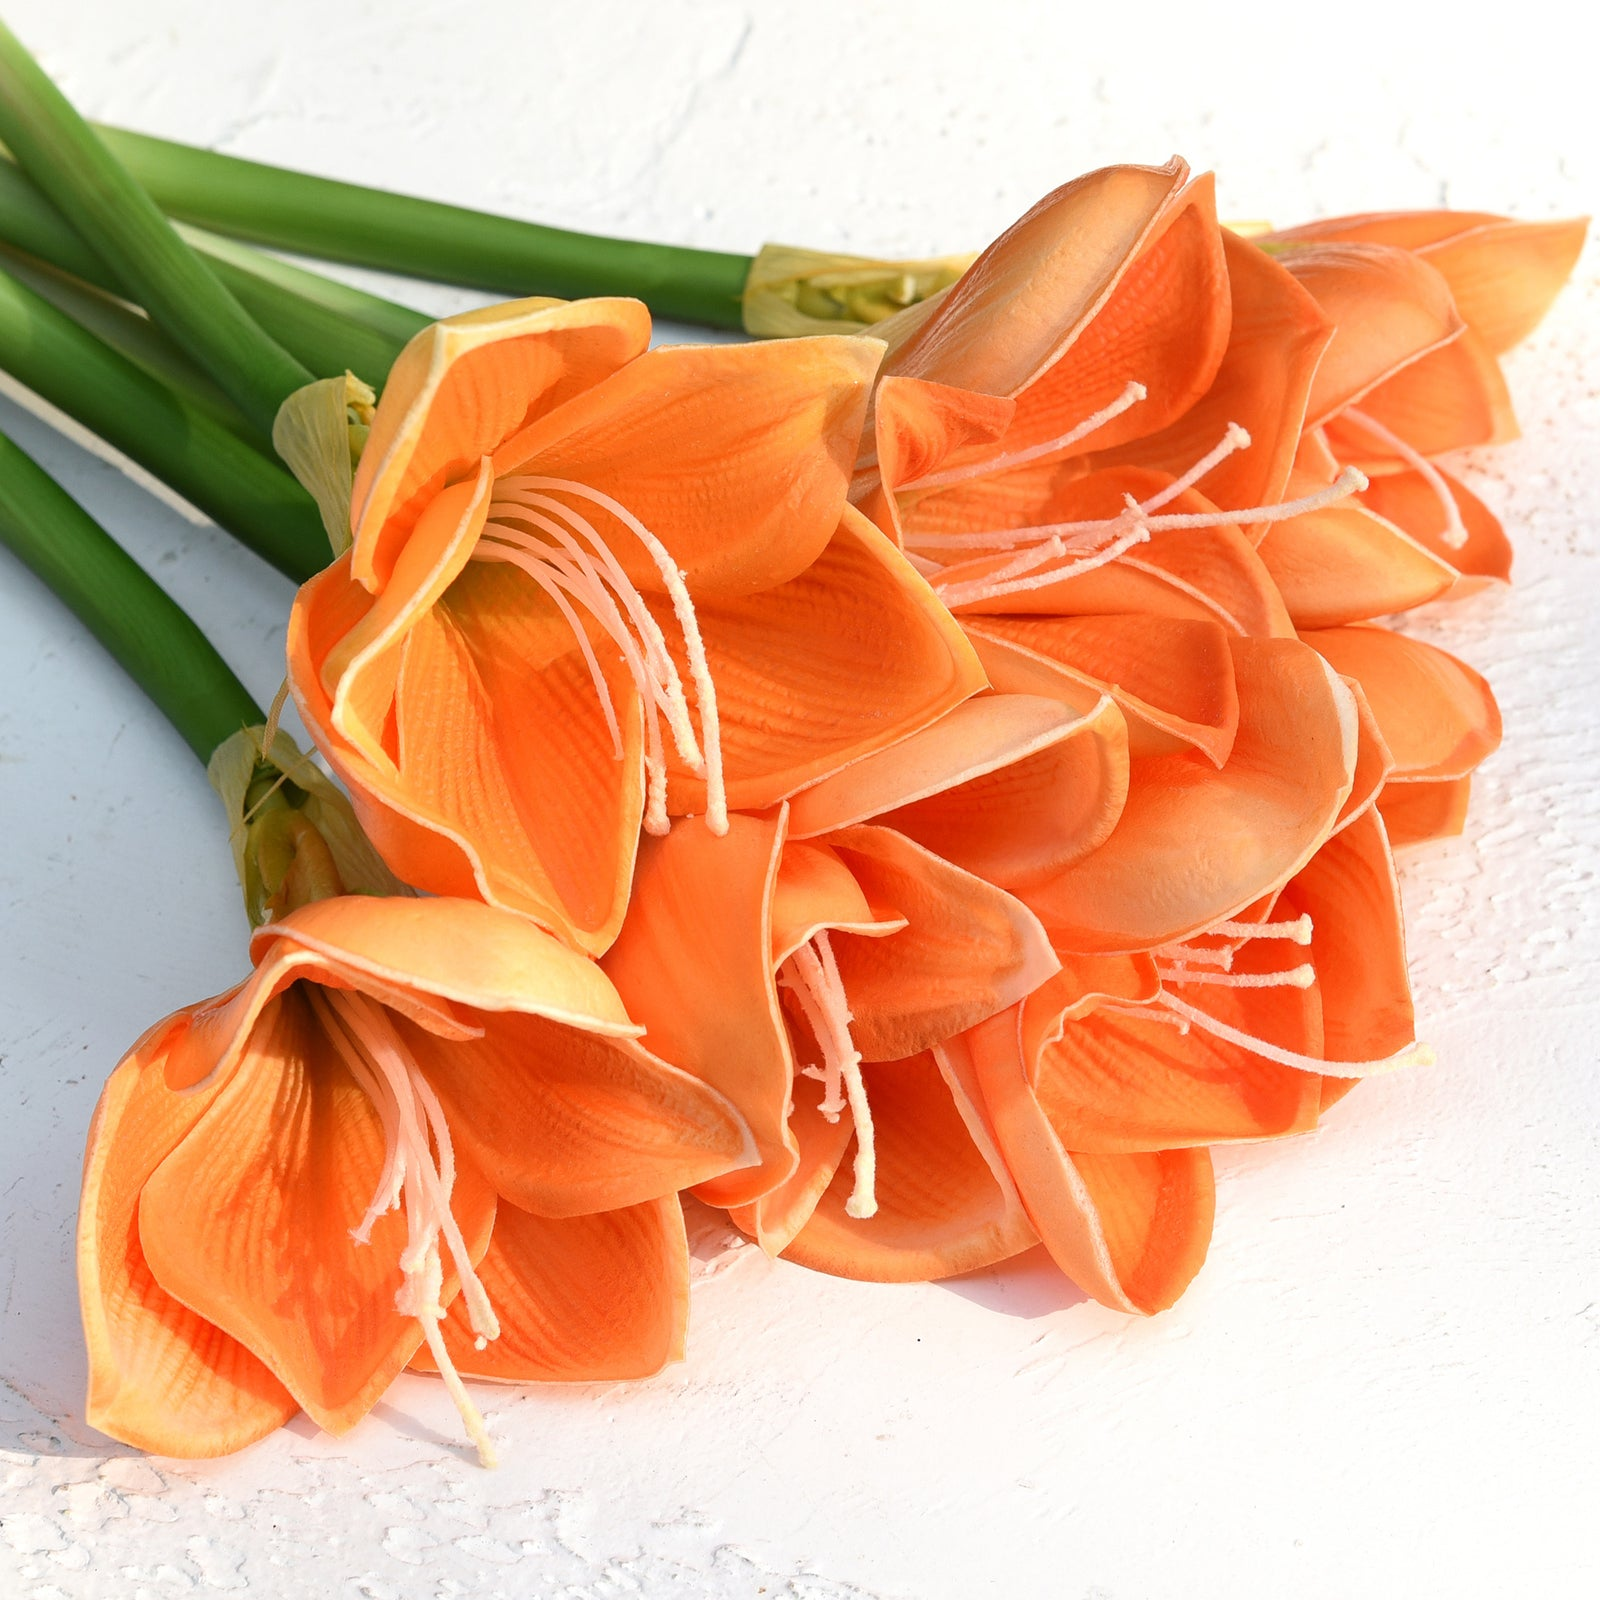 7 Stems Artificial Real Touch Orange Clivia Flowers & Bouquet 11.8 Inches (30cm)